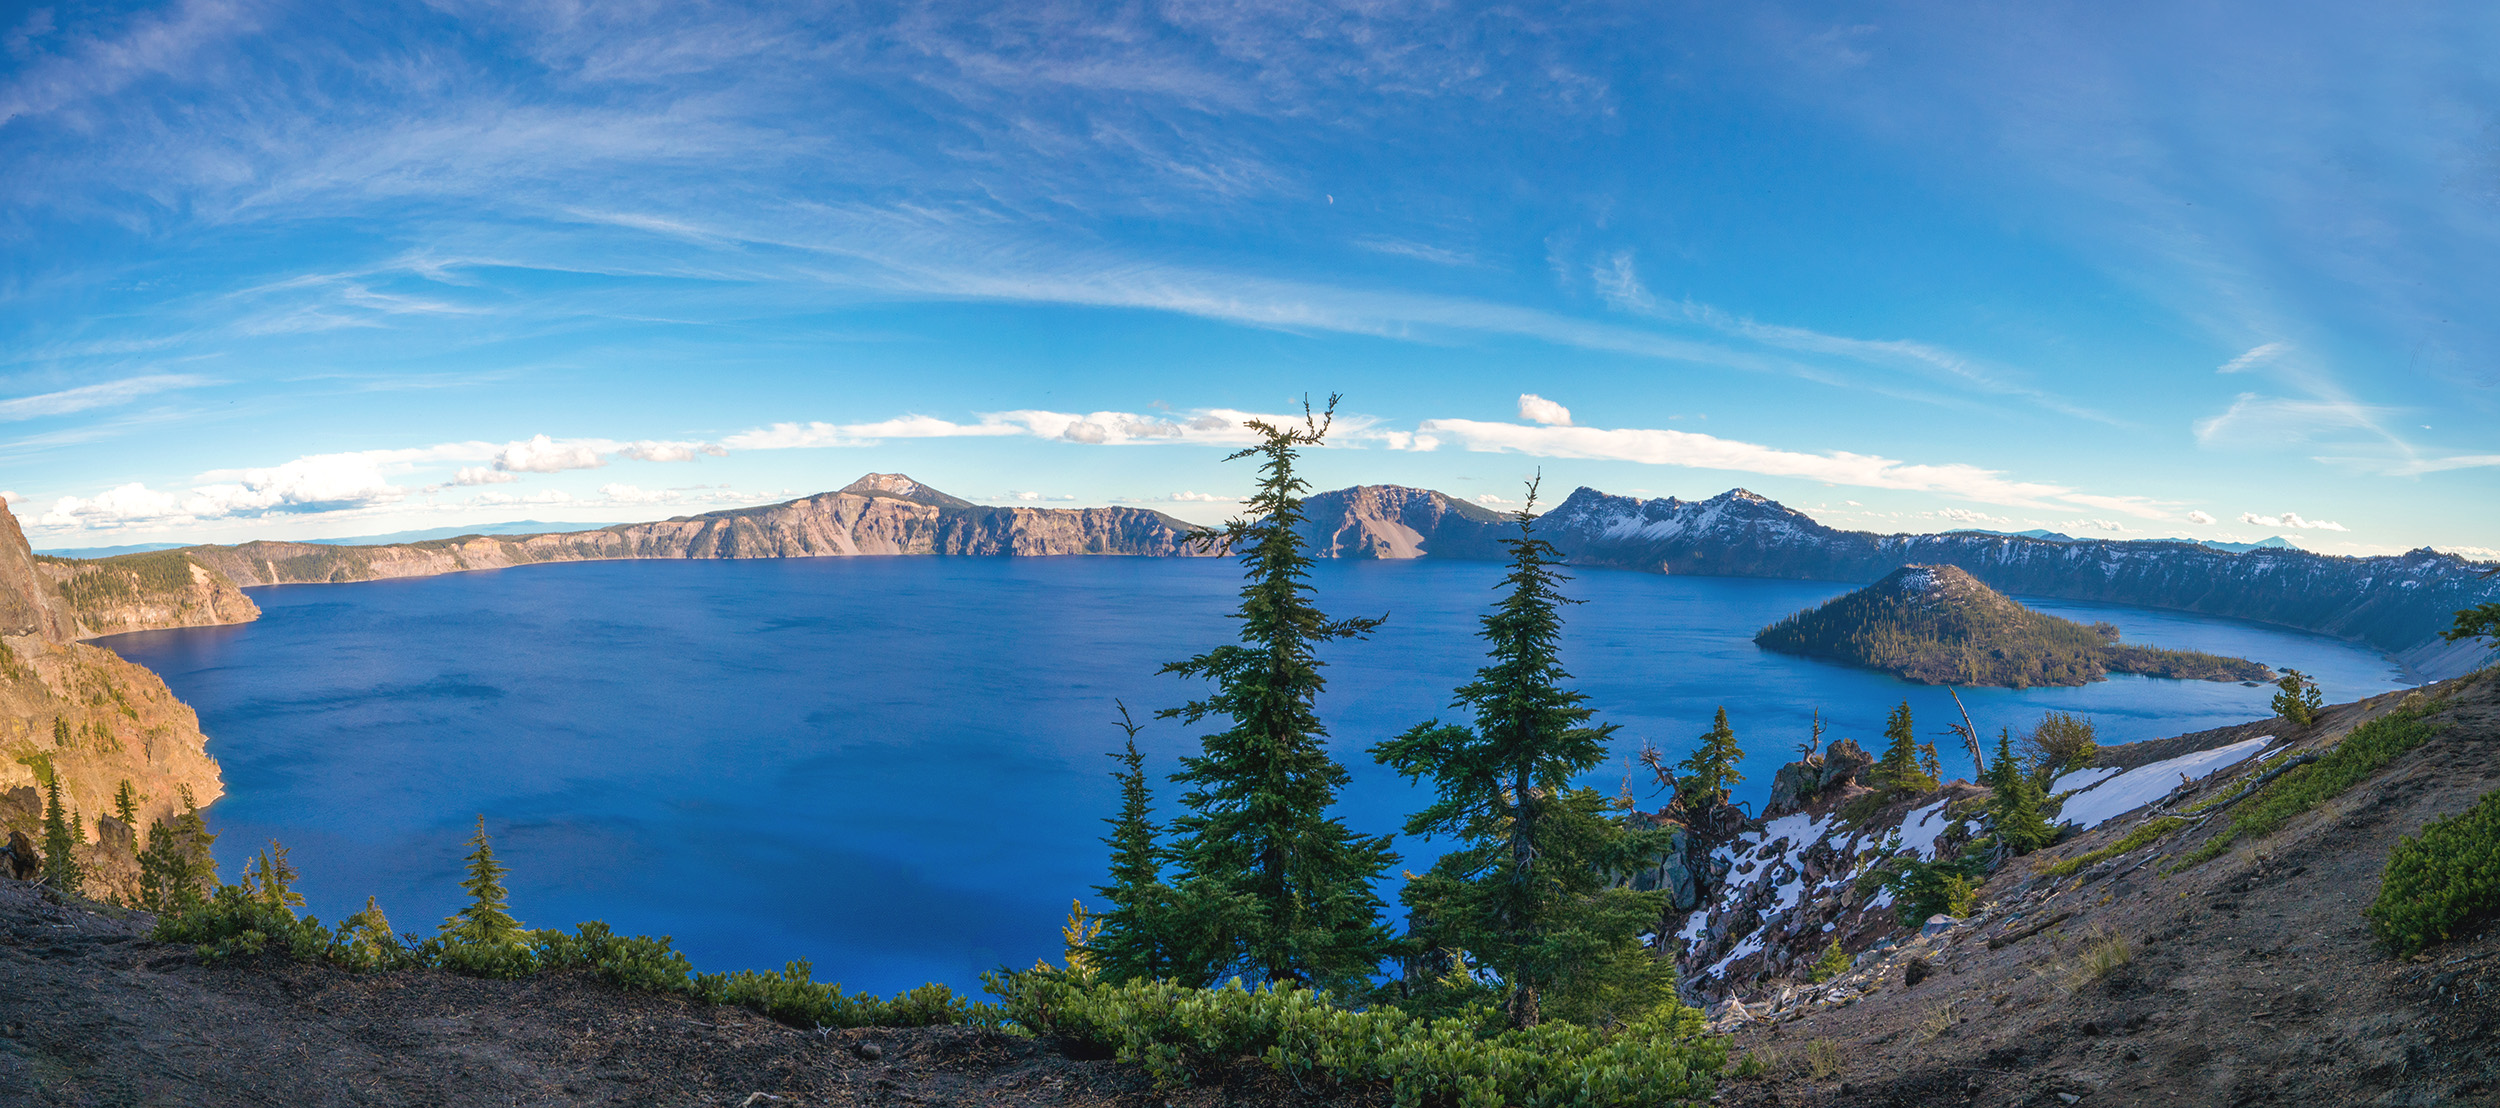 Landscape view from a hill of the vast expanse of Crater Lake, Oregon